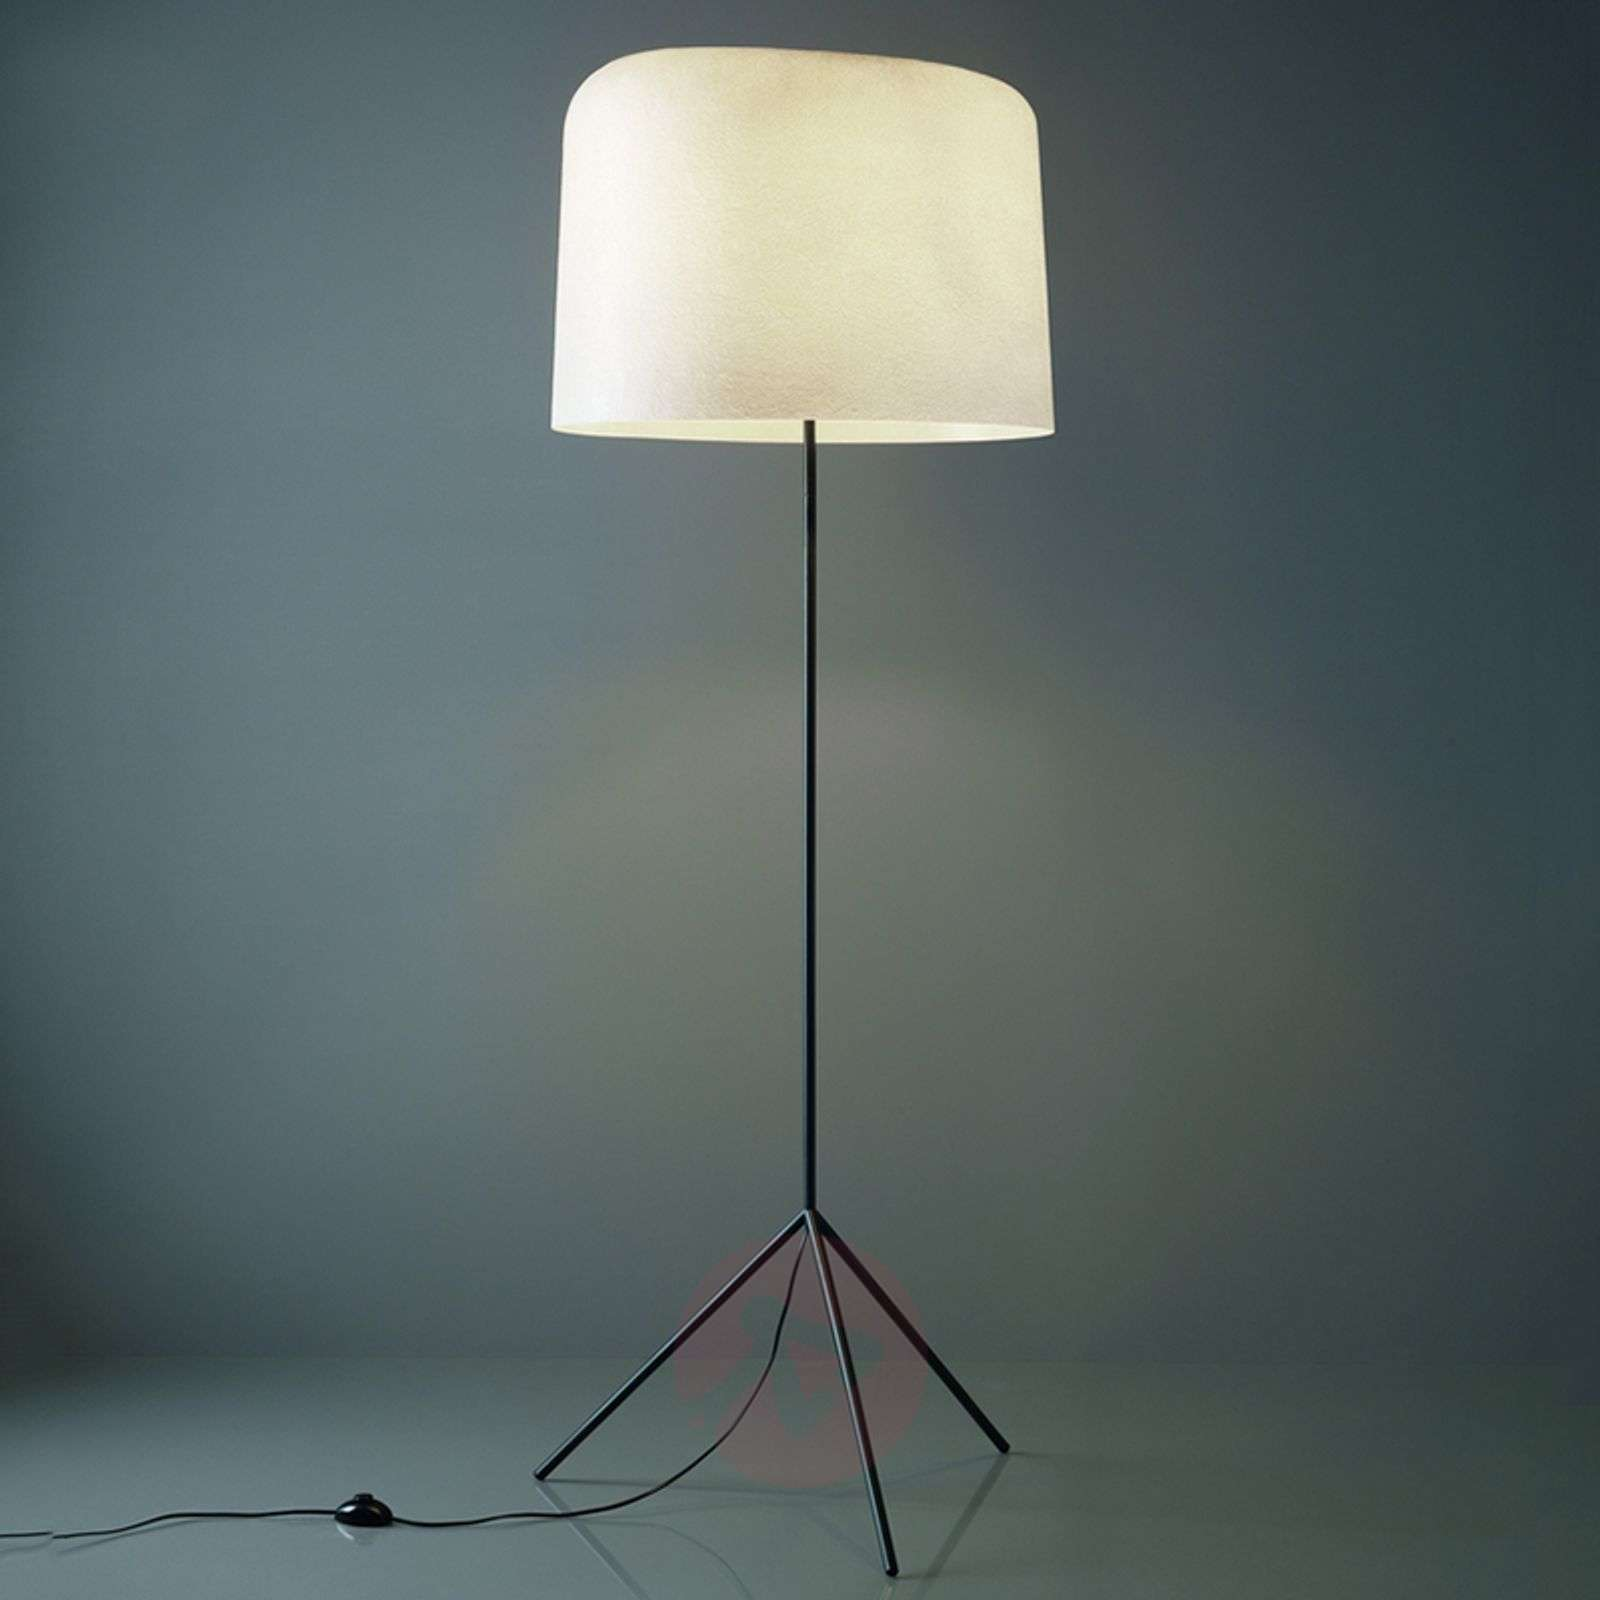 With a fibre glass lampshade floor lamp Ola-5501102X-01